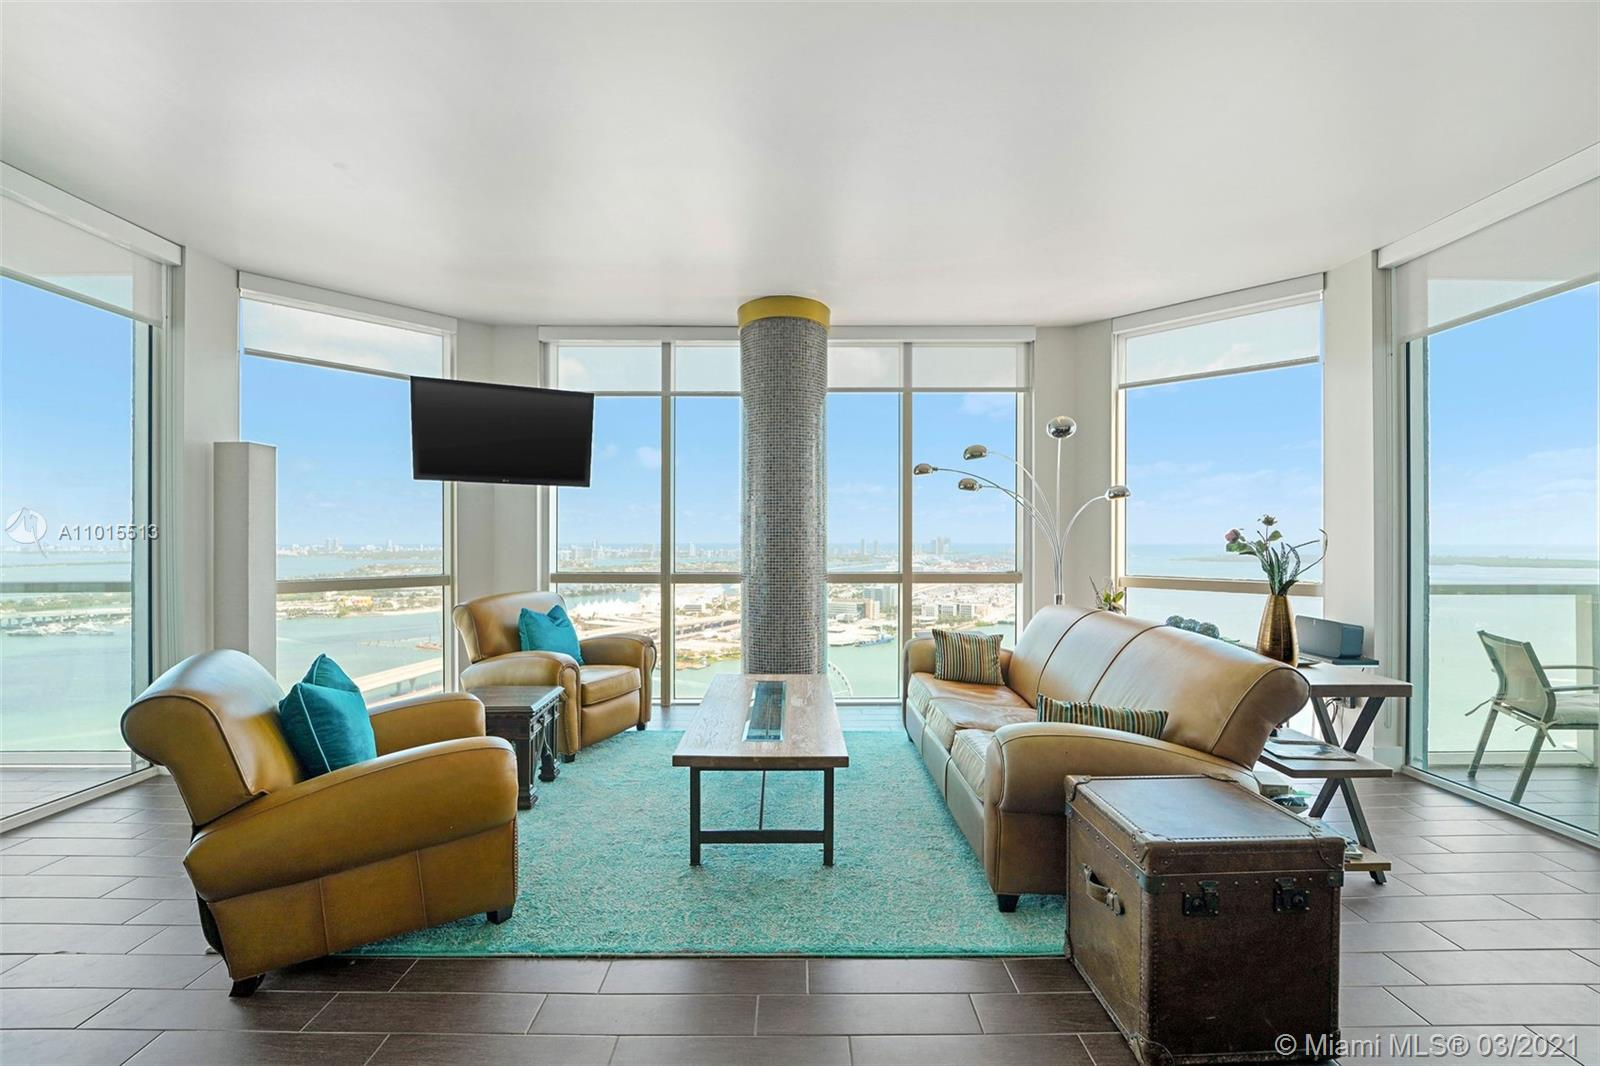 STUNNING AND SPACIOUS HOME IN THE SKY WITH DIRECT EAST VIEWS OF BISCAYNE BAY, BAYFRONT PARK, AND PORT OF MIAMI. 3 BEDROOMS AND 3 BATHS WITH FANTASTIC SPLIT PLAN LAYOUT, OPEN KITCHEN AND GREAT VIEWS FROM EVERY ROOM. 2 ASSIGNED PARKING SPACES AND ADDITIONAL ASSIGNED STORAGE UNIT ALSO INCLUDED IN SALE. VIZCAYNE OFFERS LUXURIOUS AMENITIES WITH 4 POOLS, RECENTLY REDONE STATE OF THE ART GYM, CLUBHOUSE, SPA, THEATER AND MEDIA ROOM, BUSINESS CENTERS, ETC. FANTASTIC LOCATION WITH ALL THE BEST THAT DOWNTOWN HAS TO OFFER WITHIN FOOTSTEPS AND EASY ACCESS TO METRORAIL, BRIGHTLINE AND MORE. CALL LA FOR EASY SHOWING.